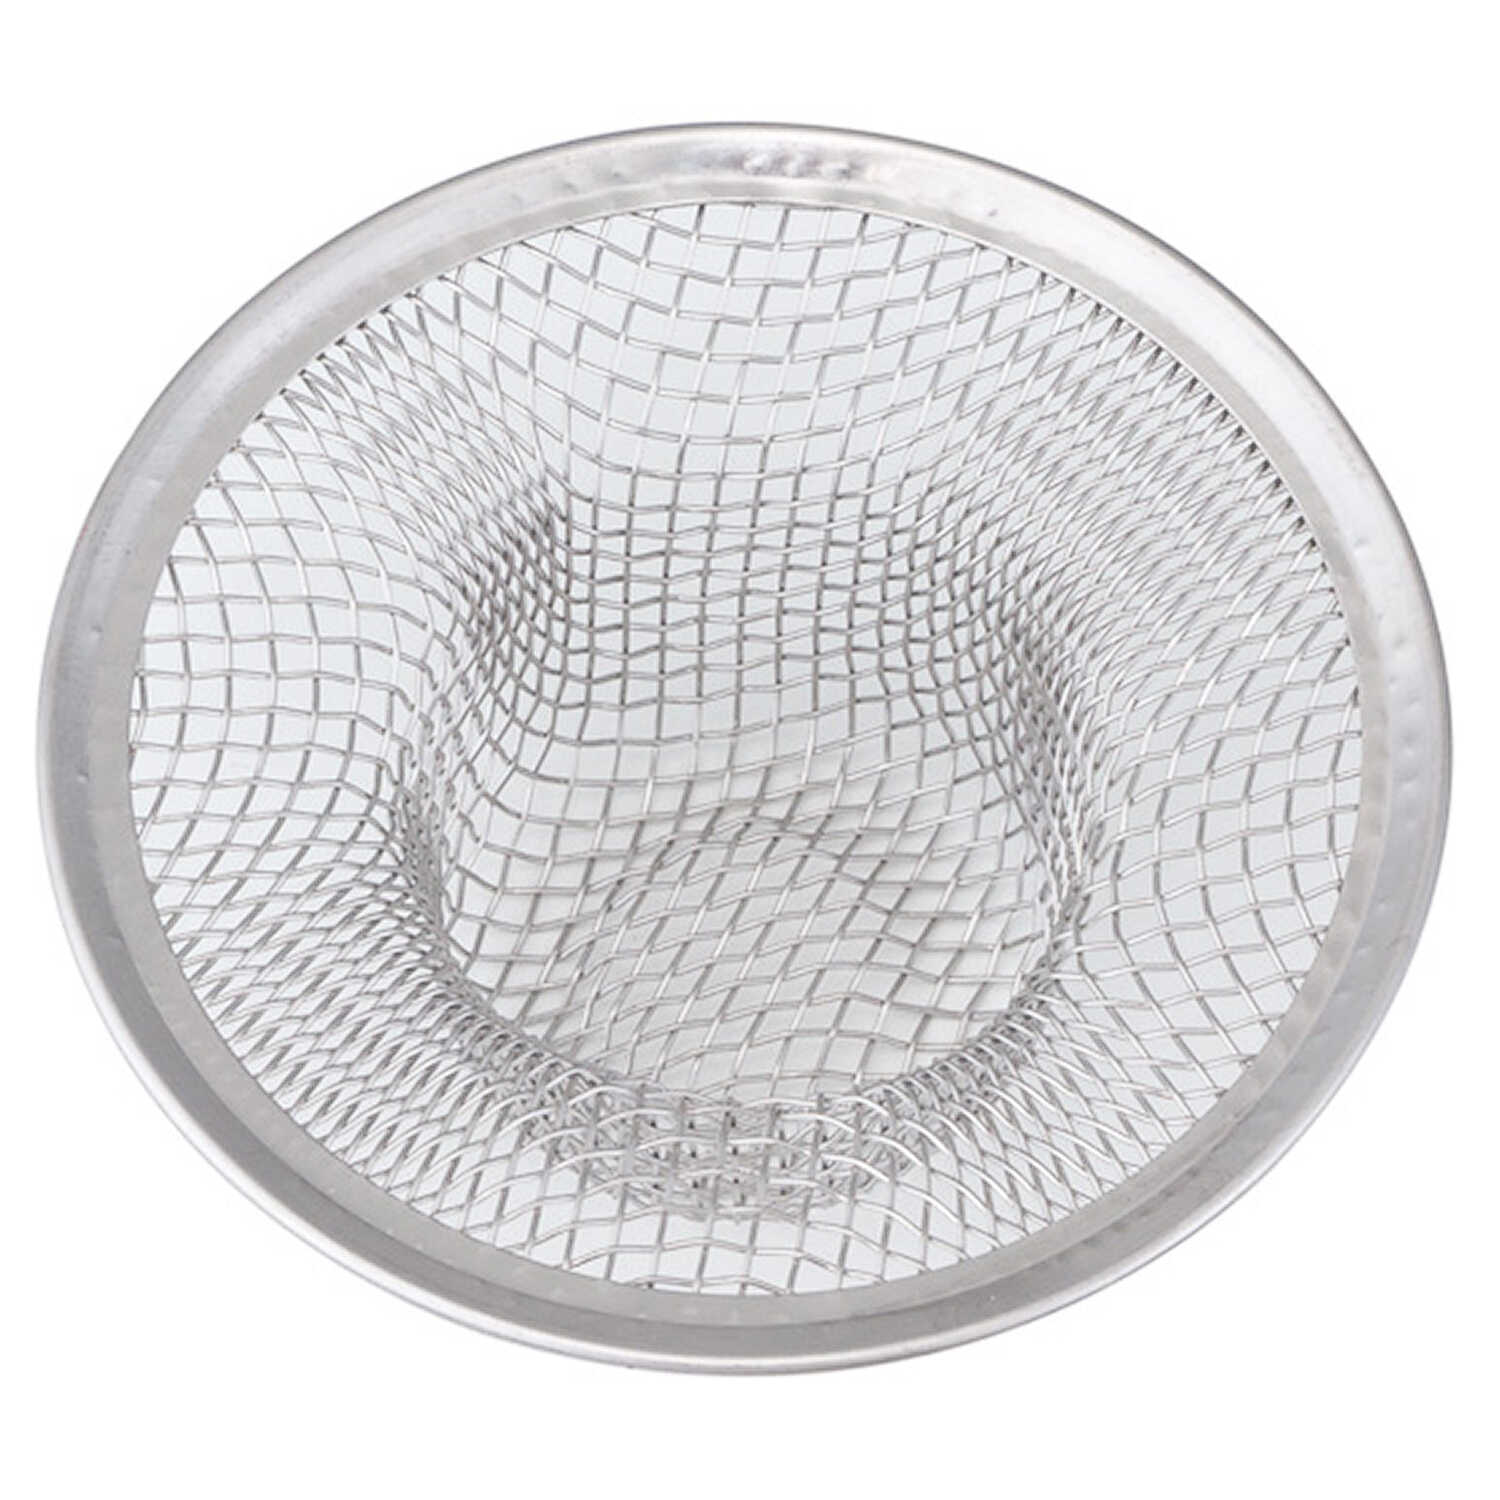 Whedon  Drain Protector  2.8 in. Round  Bathtub Hair Catcher